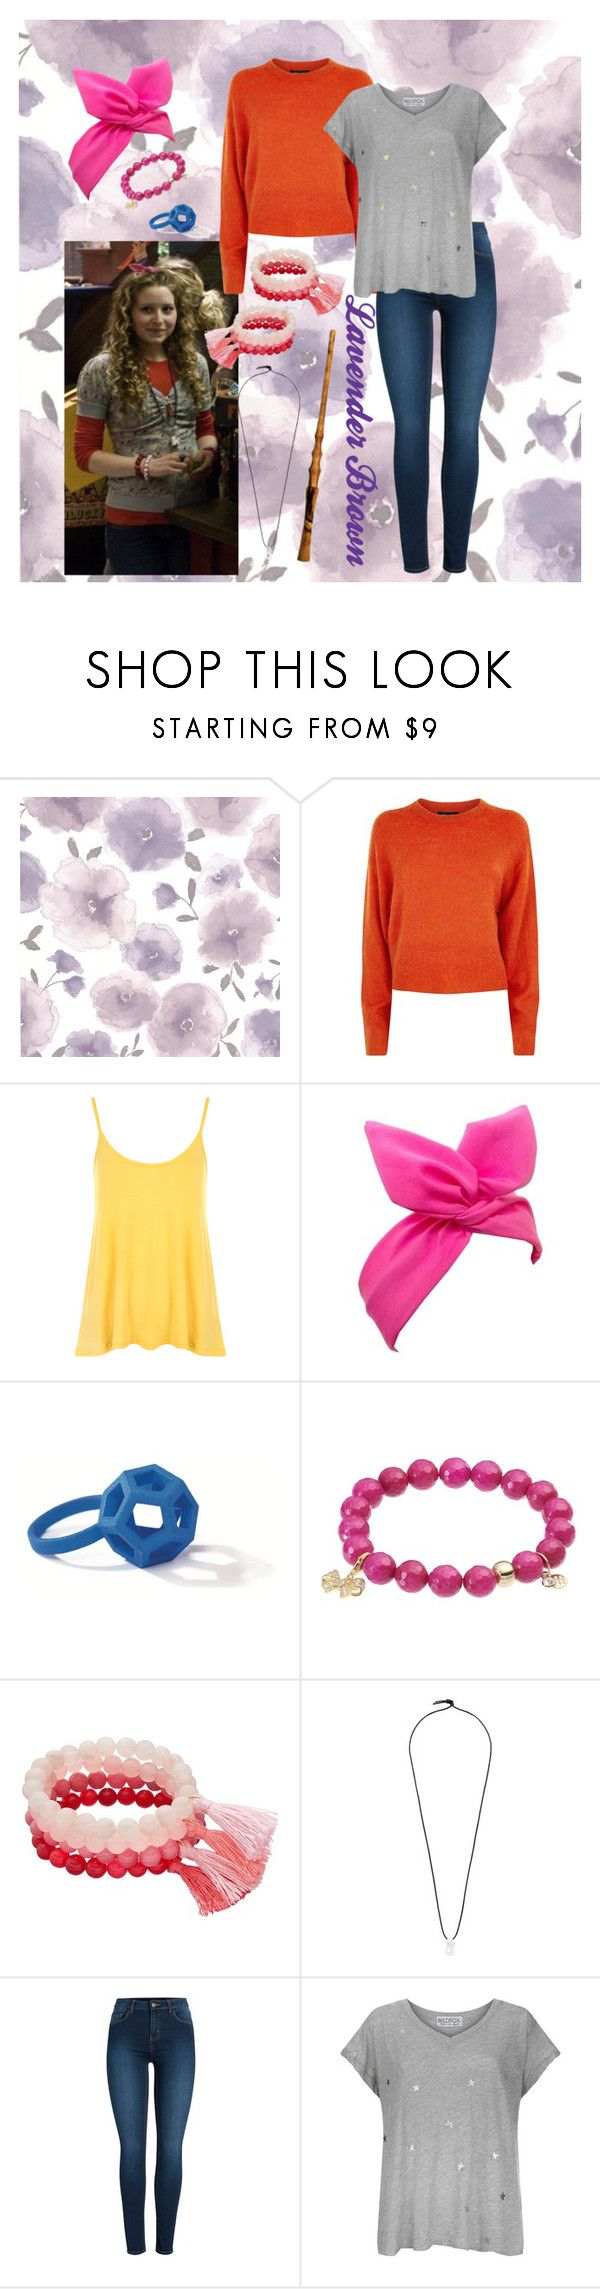 """Lavender Brown"" by volitairia ❤ liked on Polyvore featuring Graham & Brown, Lavender Brown, WearAll, Lulu in the Sky, TFS Jewelry, Loli Bijoux, Fred, Pieces and Wildfox"